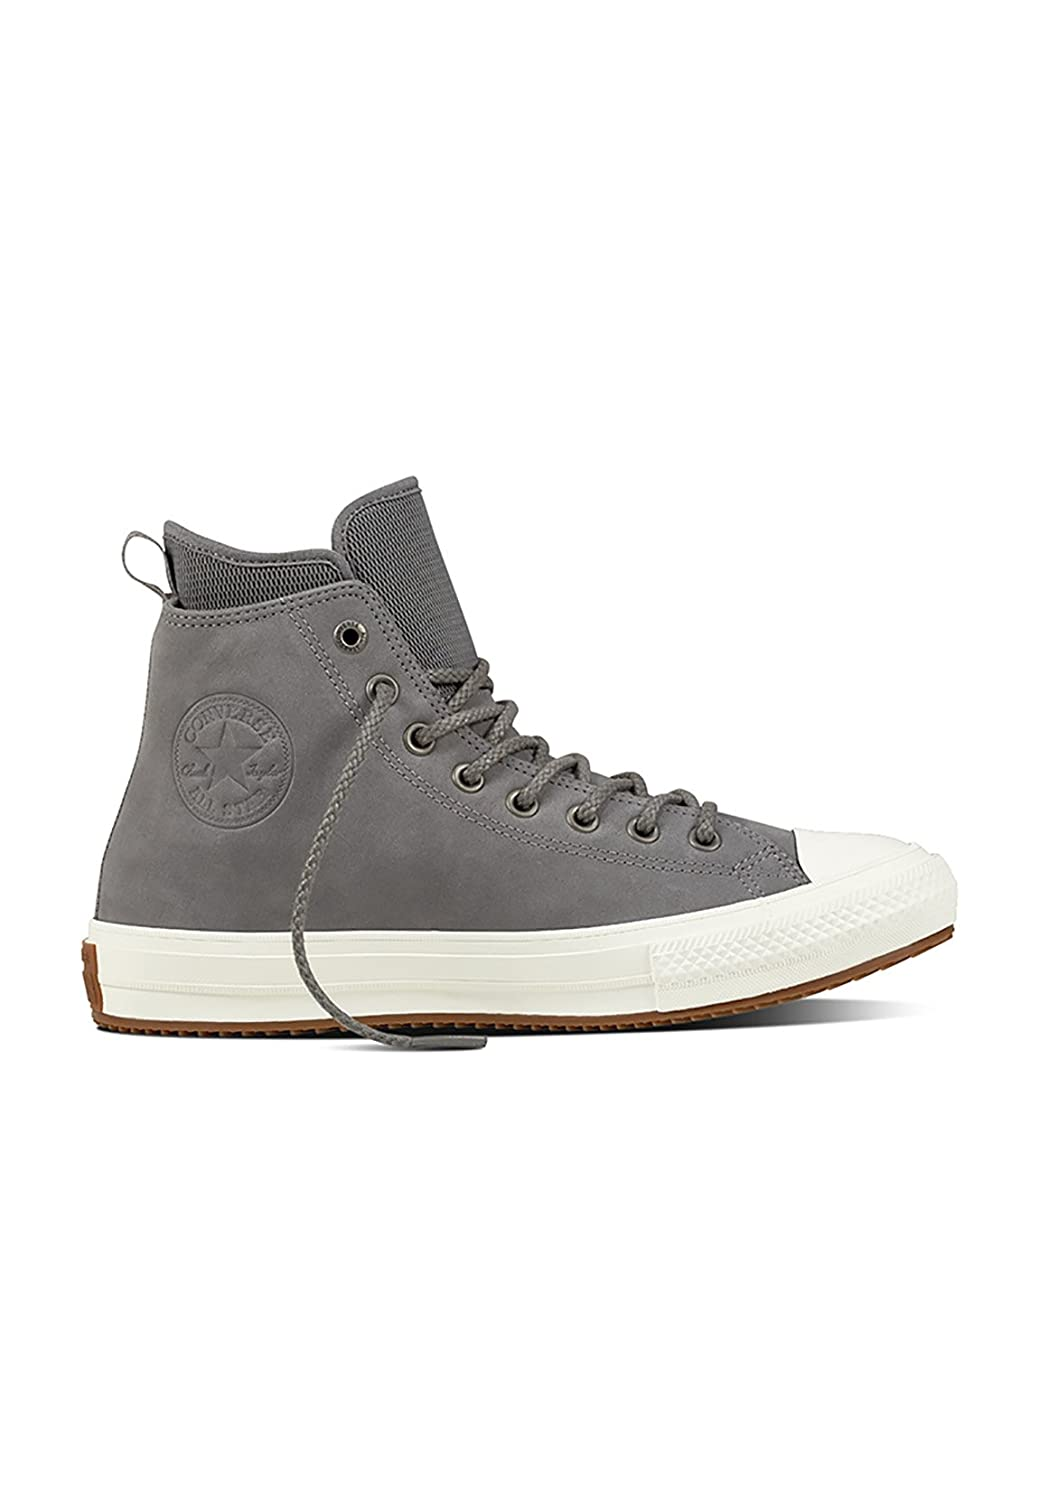 547414f1db7 Converse Adults  CTAS Wp Boot Hi Midnight Navy Wolf Grey Top ...